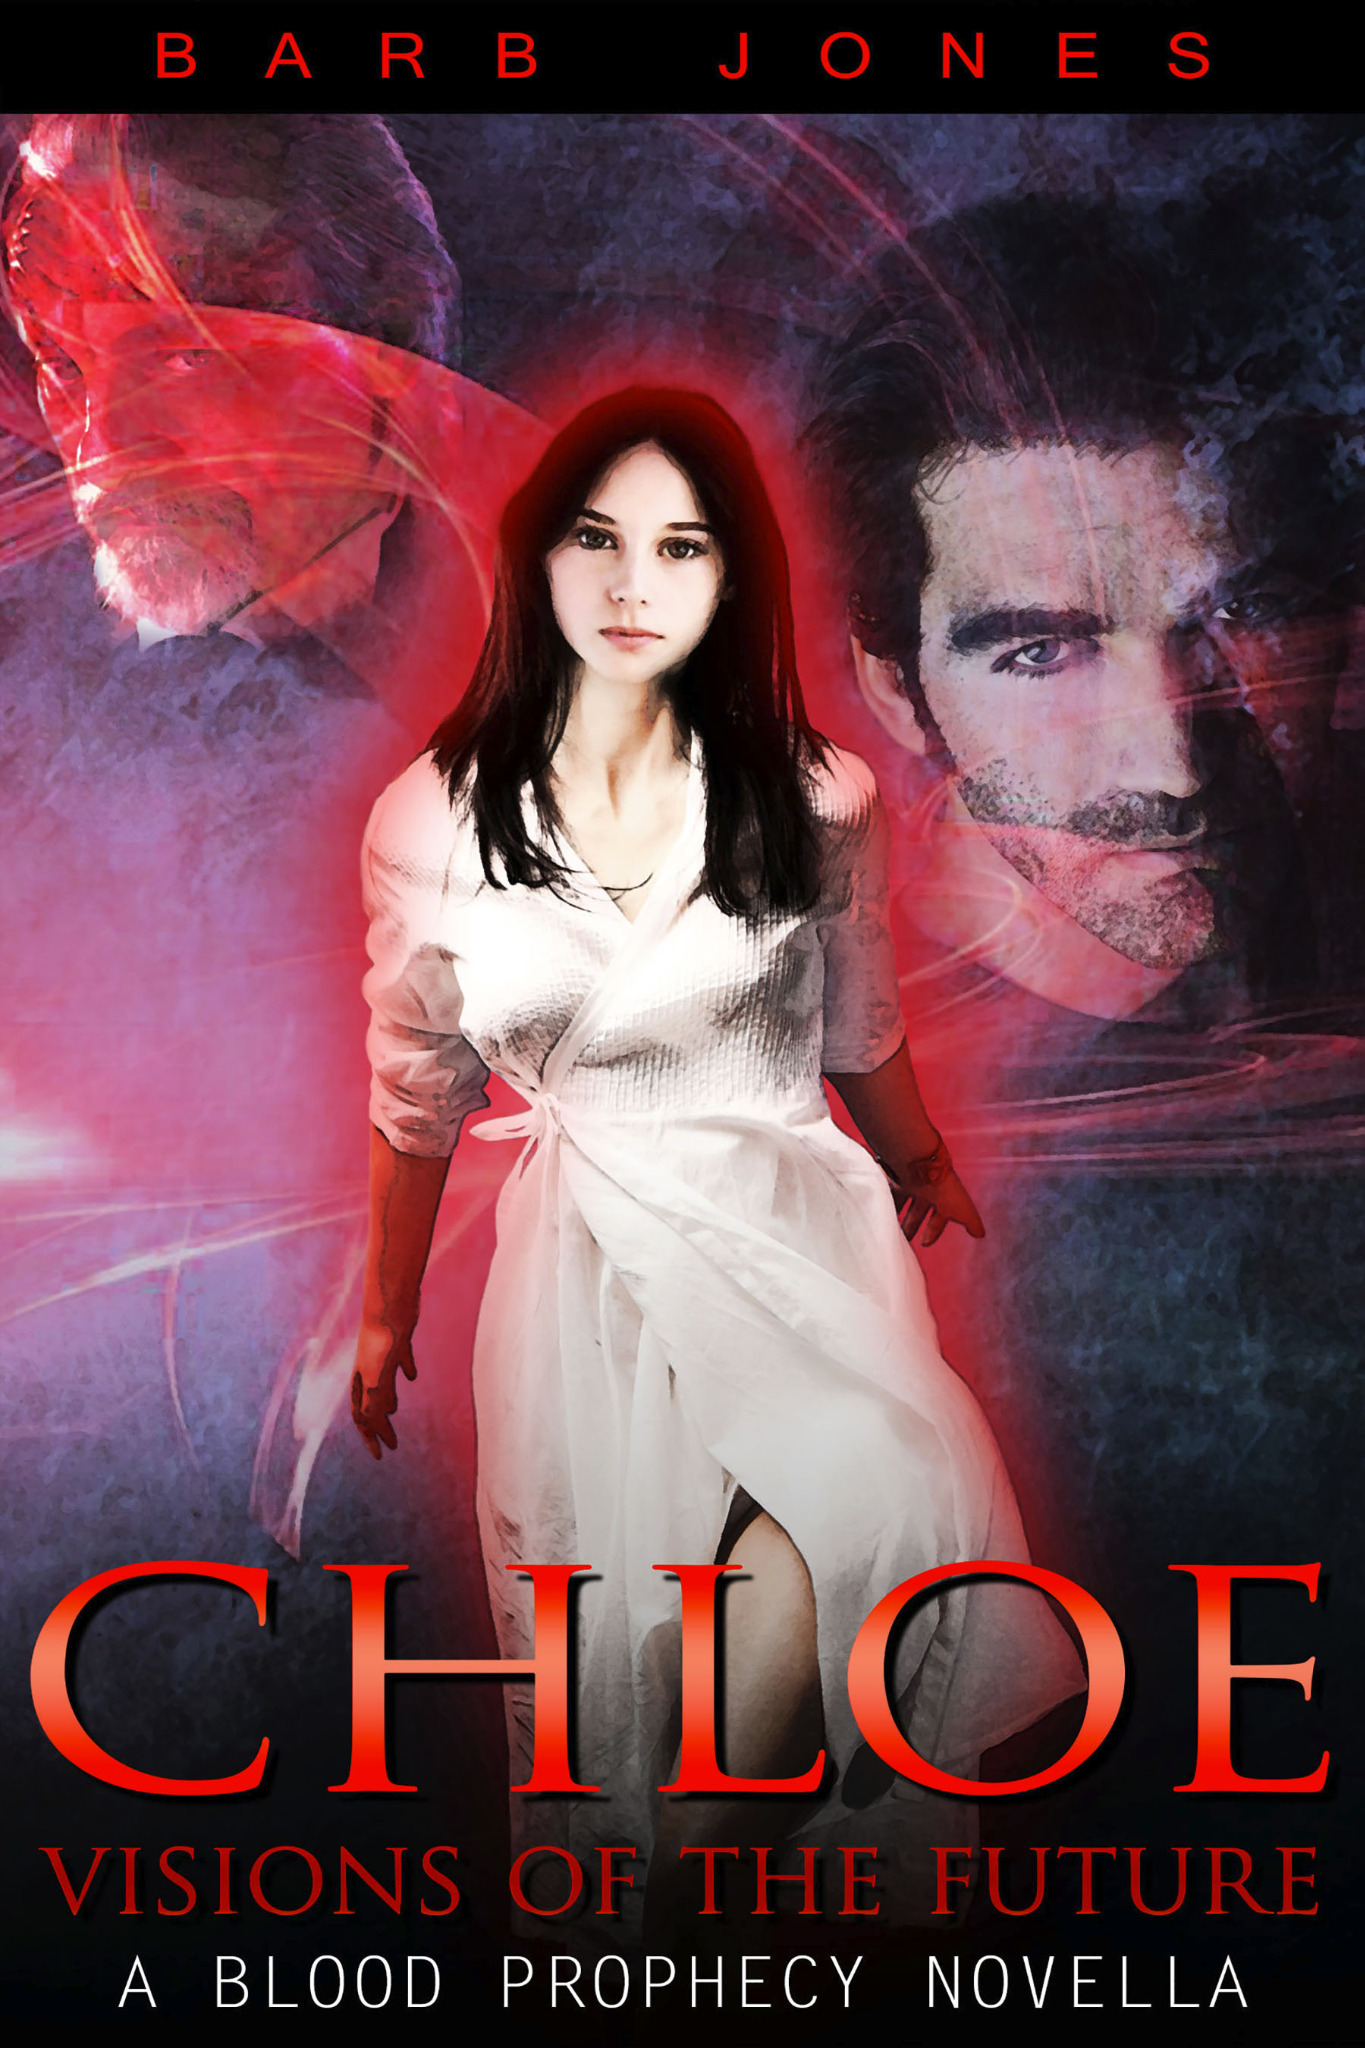 Chloe - Visions of the Future - A Blood Prophecy Novella